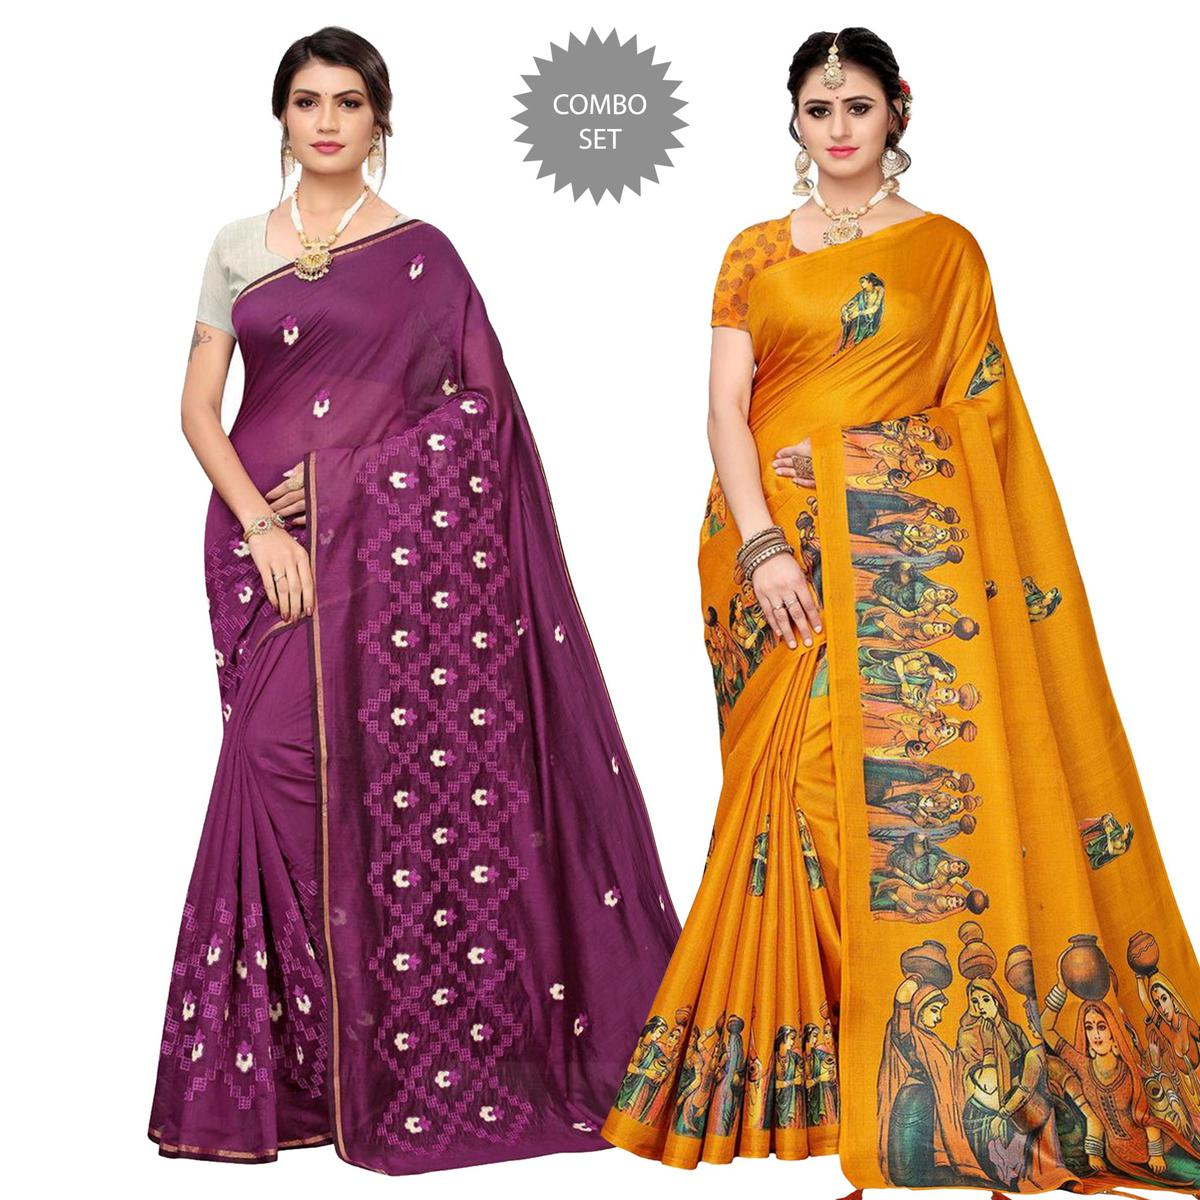 Exotic Printed-Embroidered Silk Saree - Pack of 2